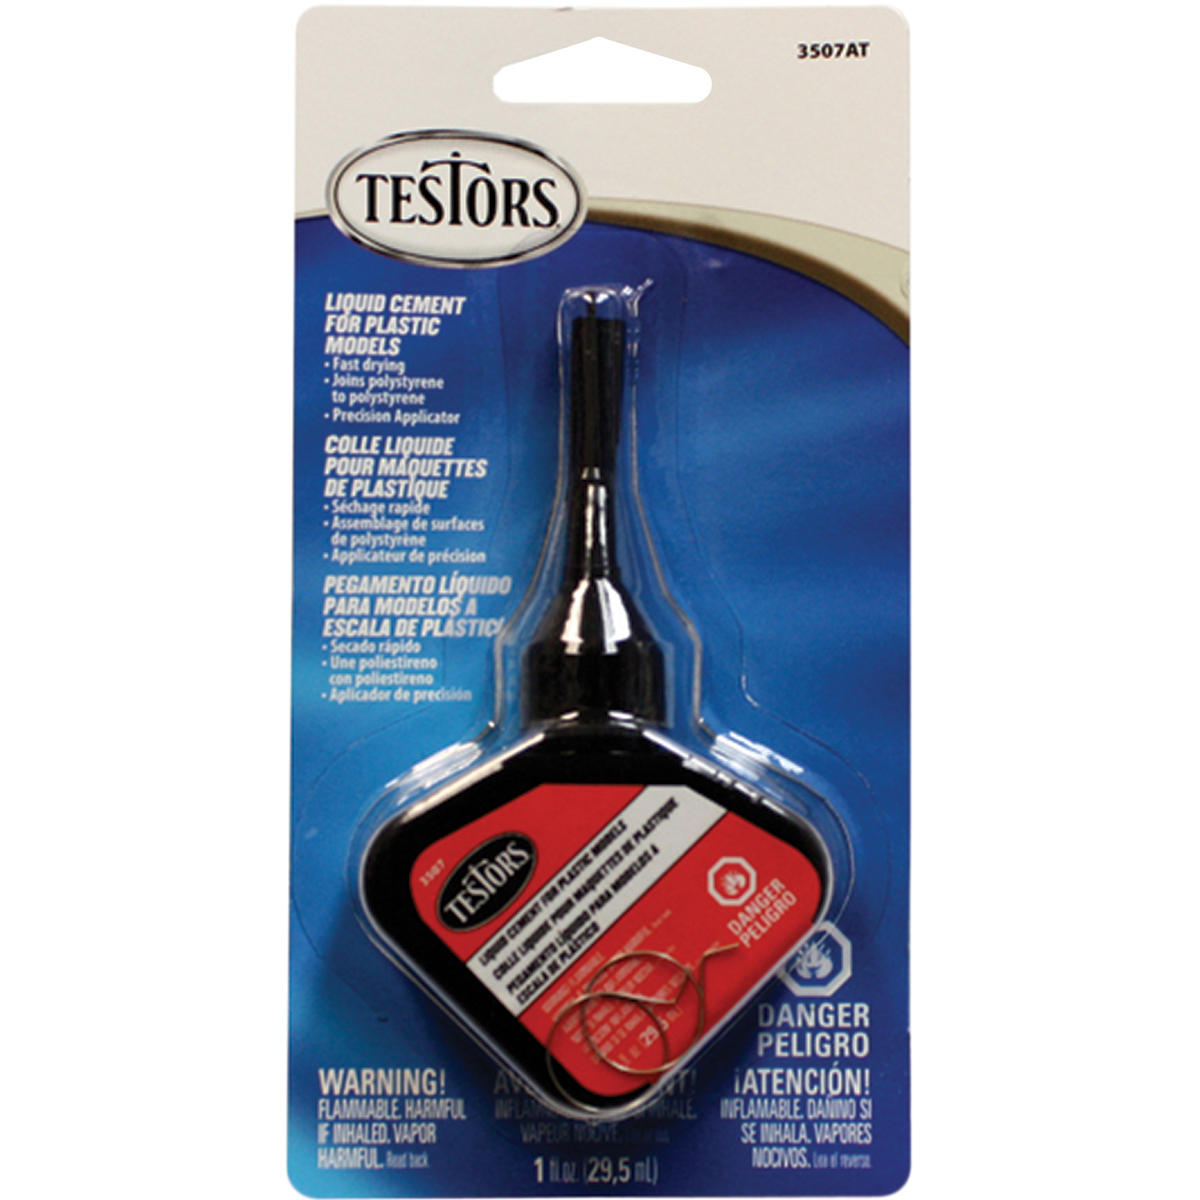 Testors 3507AT Liquid Cement for Plastic Models, 1-Ounce